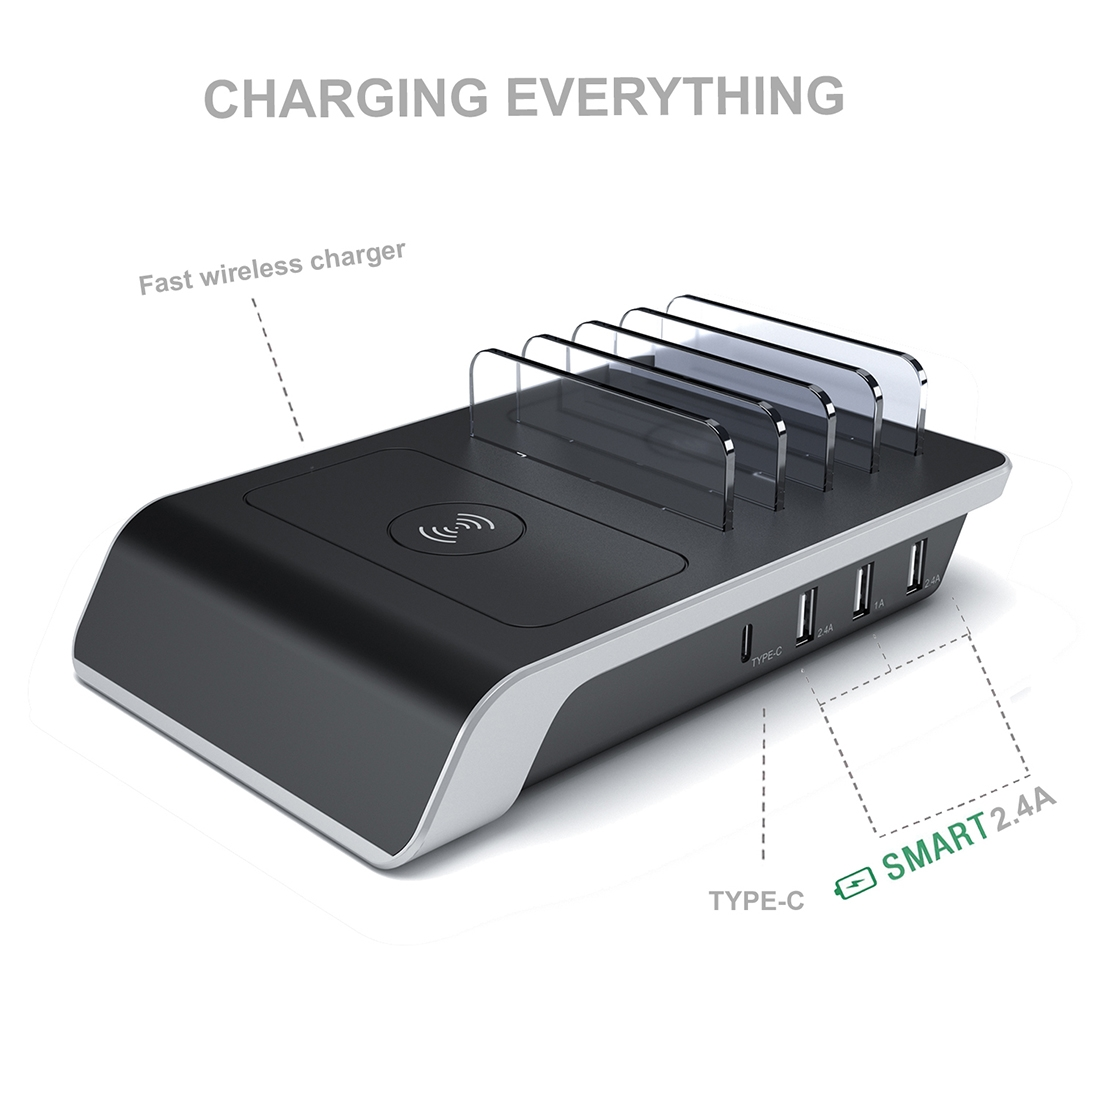 4 USB Ports Qi Standard Wireless Charger Phone Desktop Stand Holder, For iPhone, Huawei, Xiaomi, HTC, Sony and Other Smart Phones, US Plug